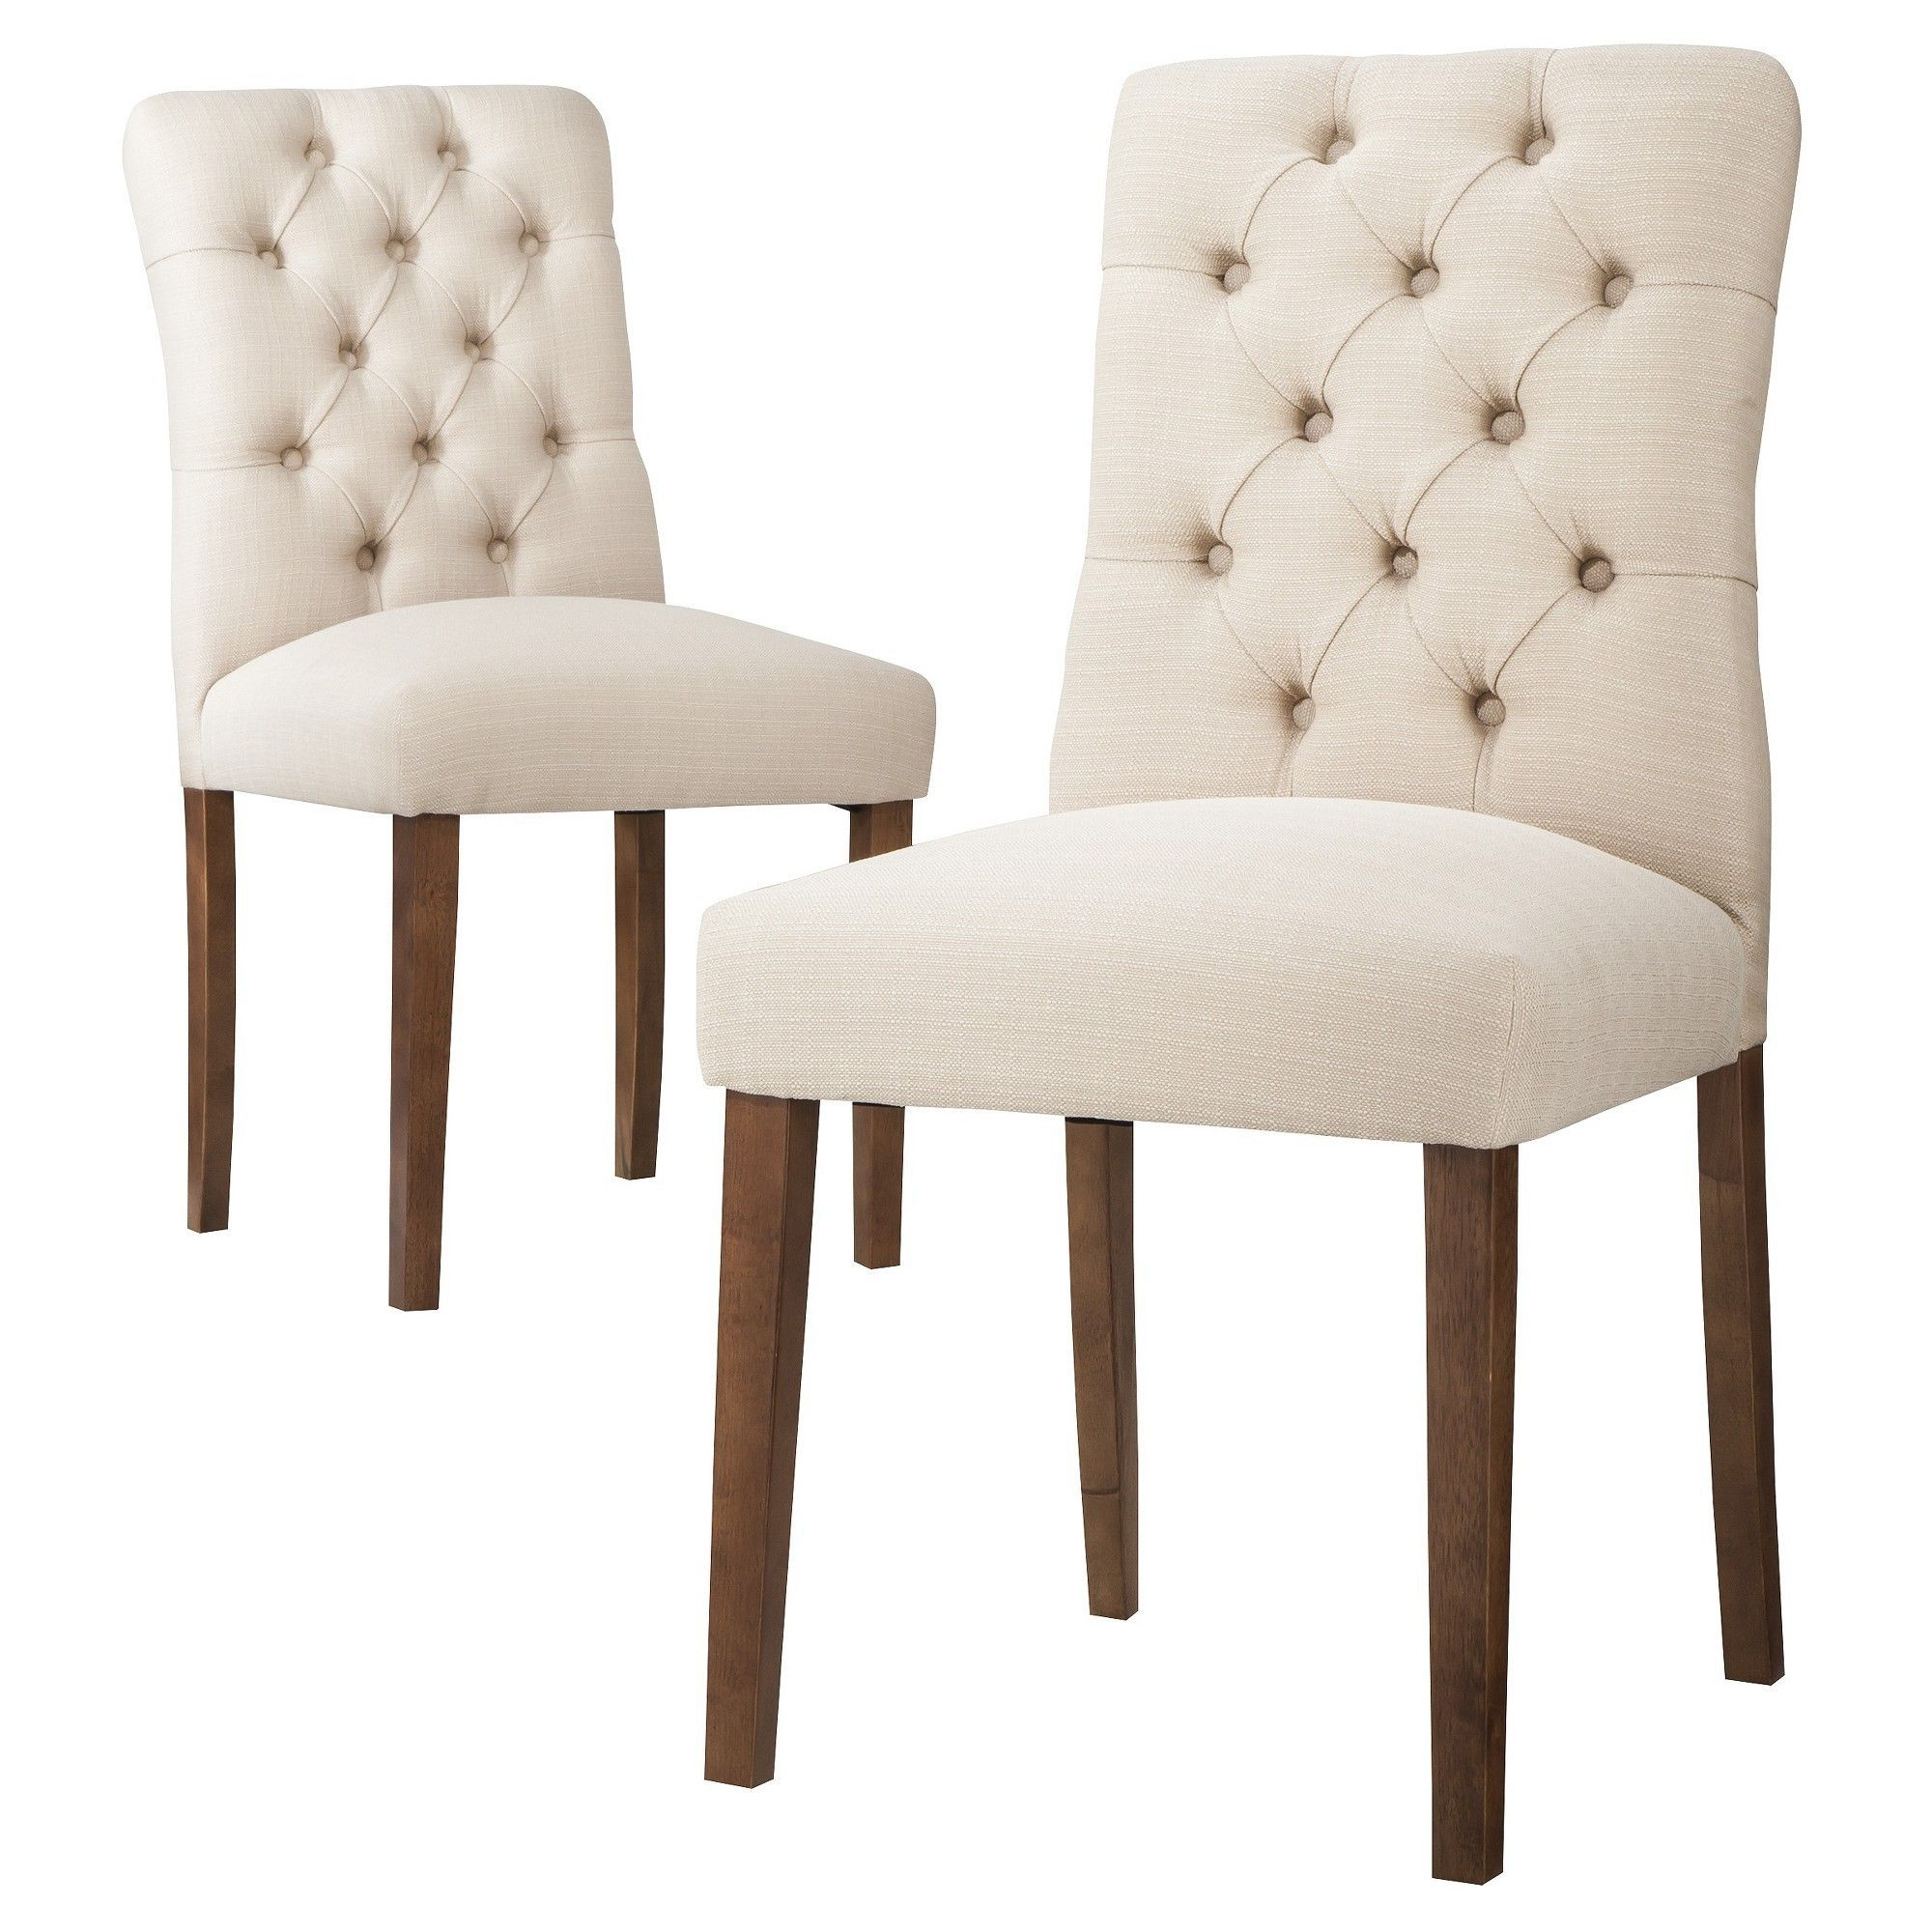 Set Da Cucina Exclusive Brookline Tufted Dining Chair Oyster Set Of 2 Threshold